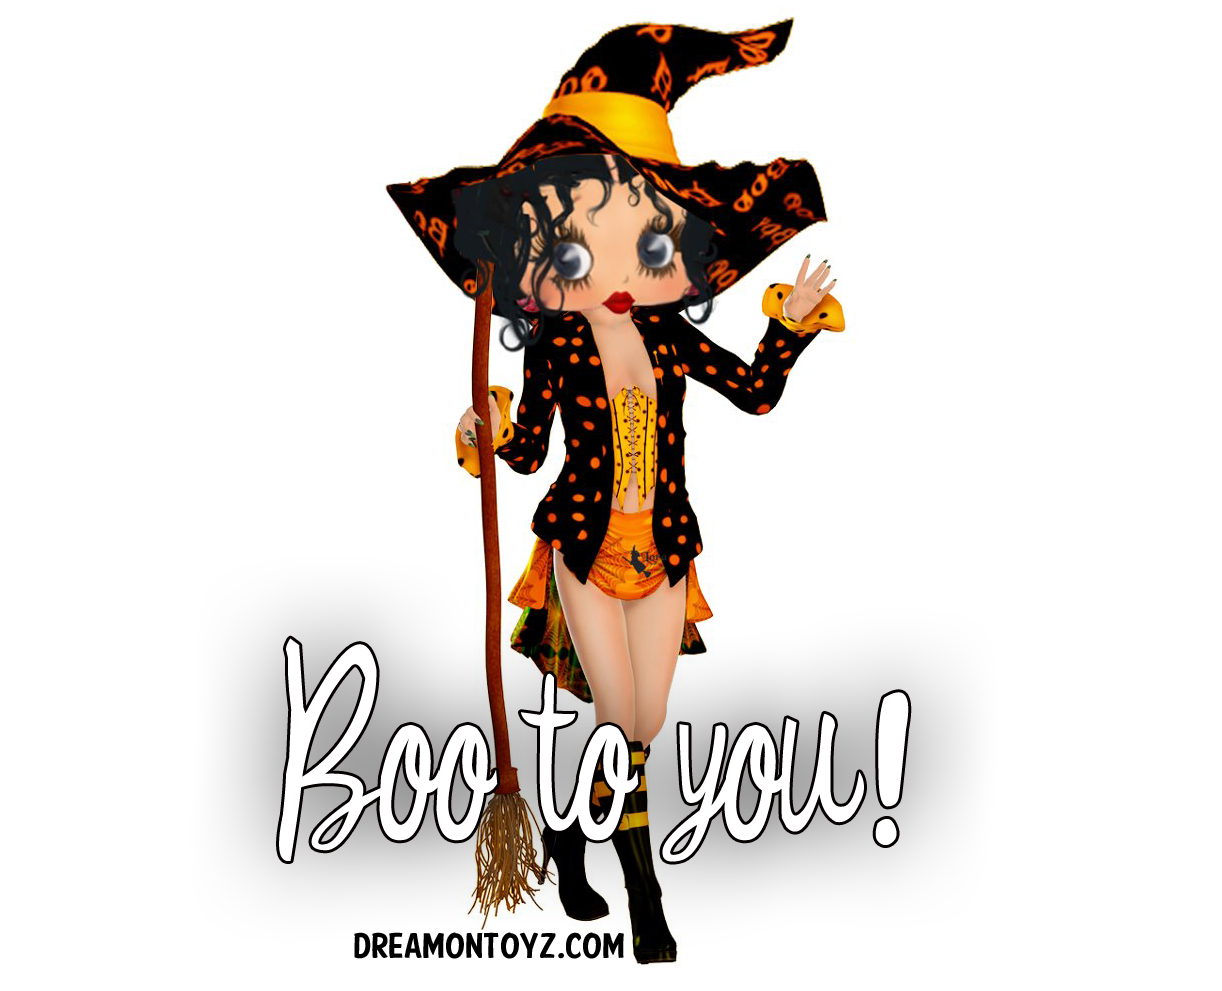 Boo to you! ~ More Betty Boop Halloween Graphics & Greetings ★ http://bettybooppicturesarchive.blogspot.com/search/label/Halloween AND ON FACEBOOK https://www.facebook.com/media/set/?set=a.710293905651126.1073741836.157123250968197&type=3 - Sexy Betty boop witch created by Hilda